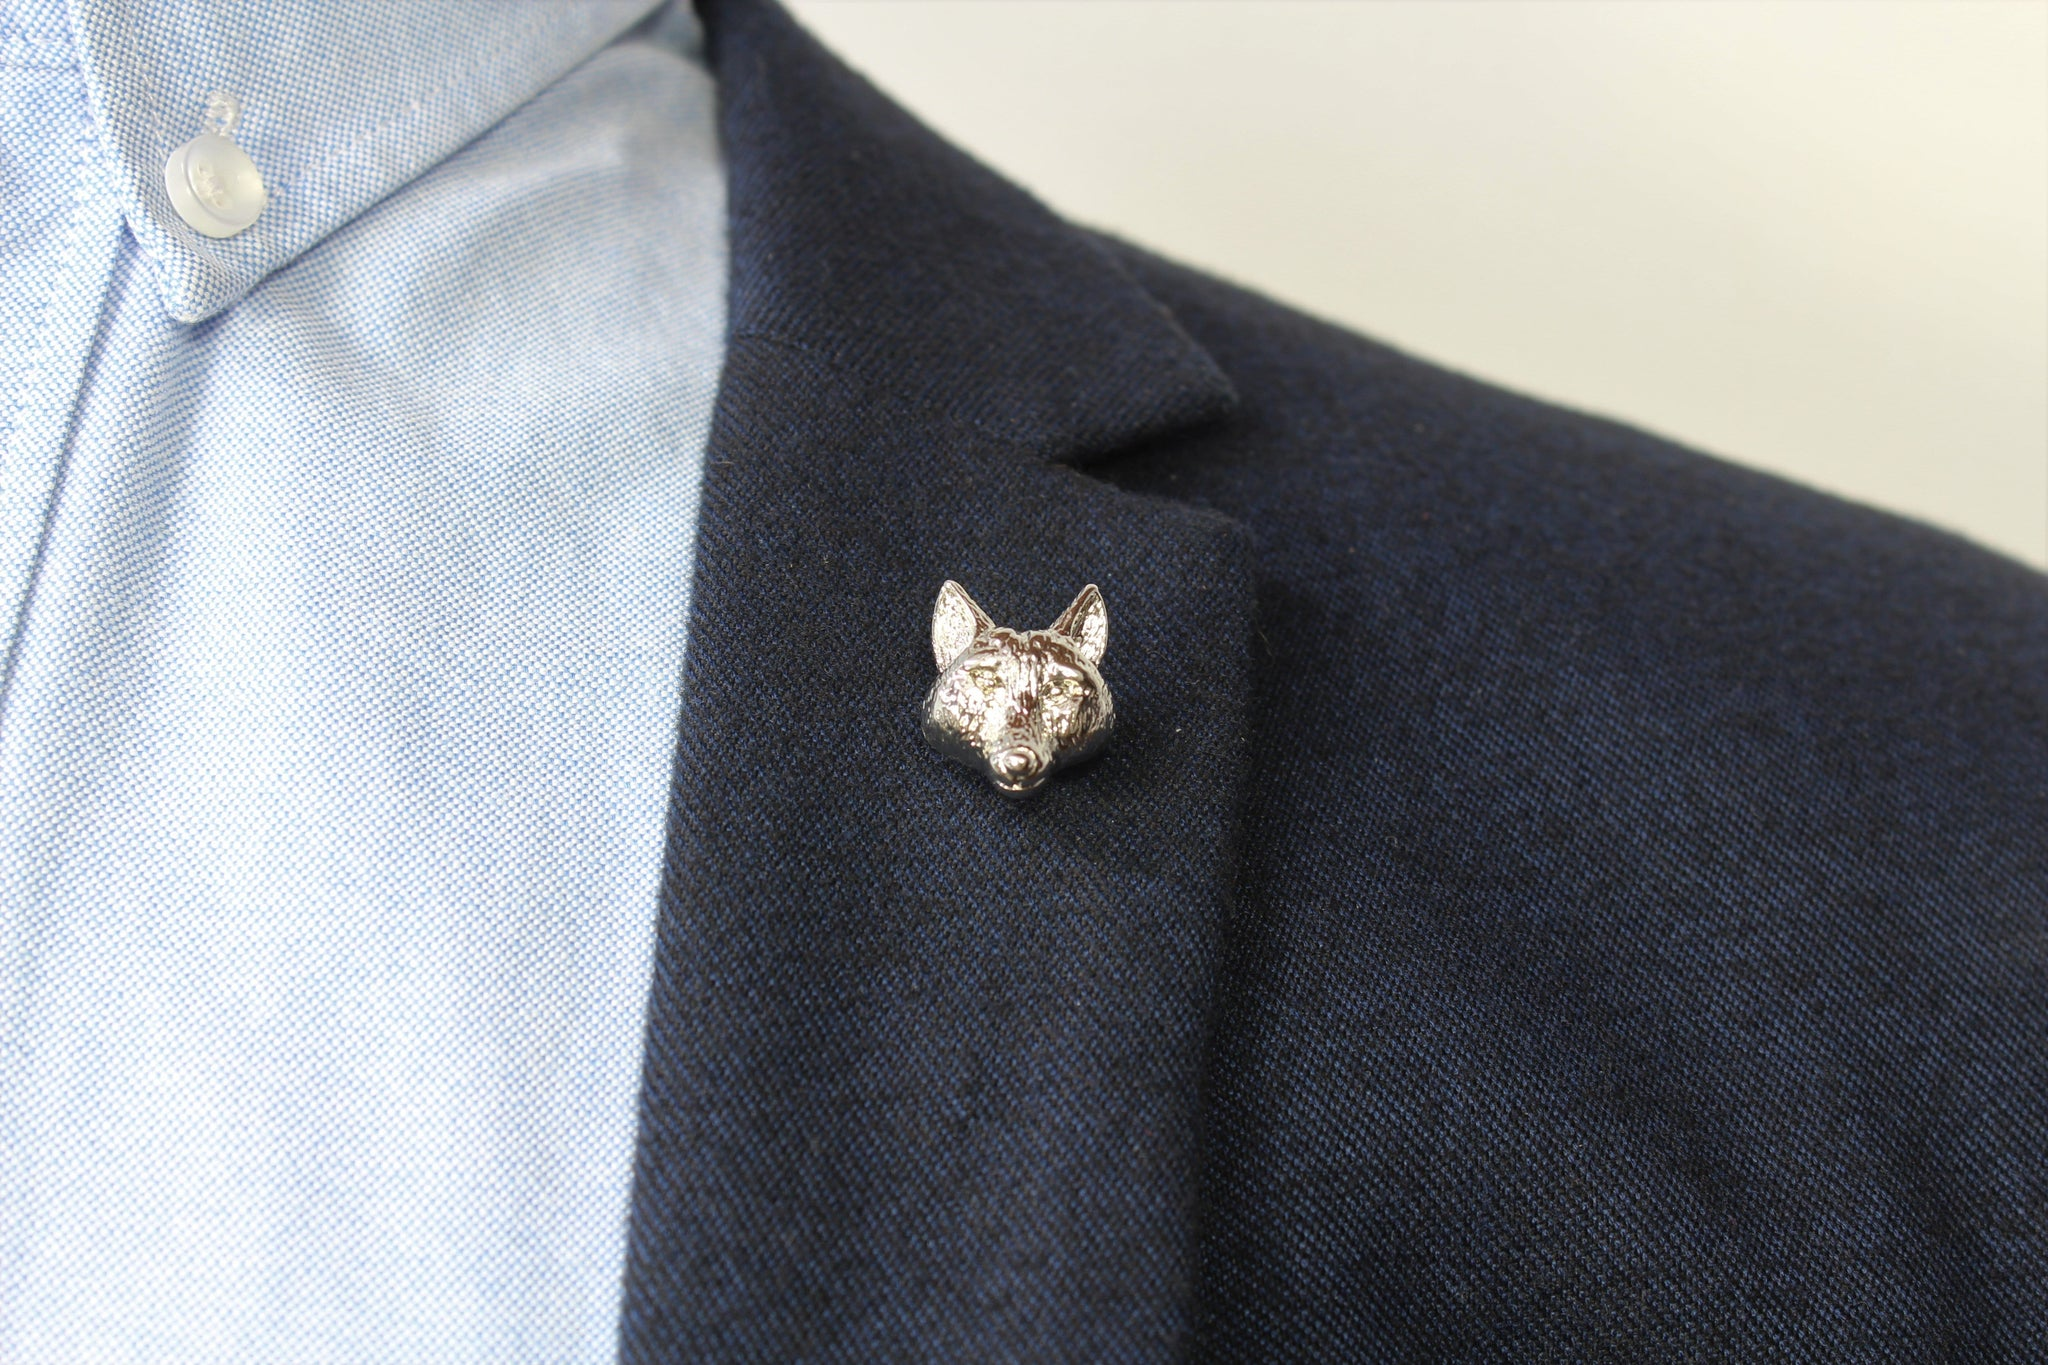 Wolf Head Lapel Pin on blazer - Stolen Riches